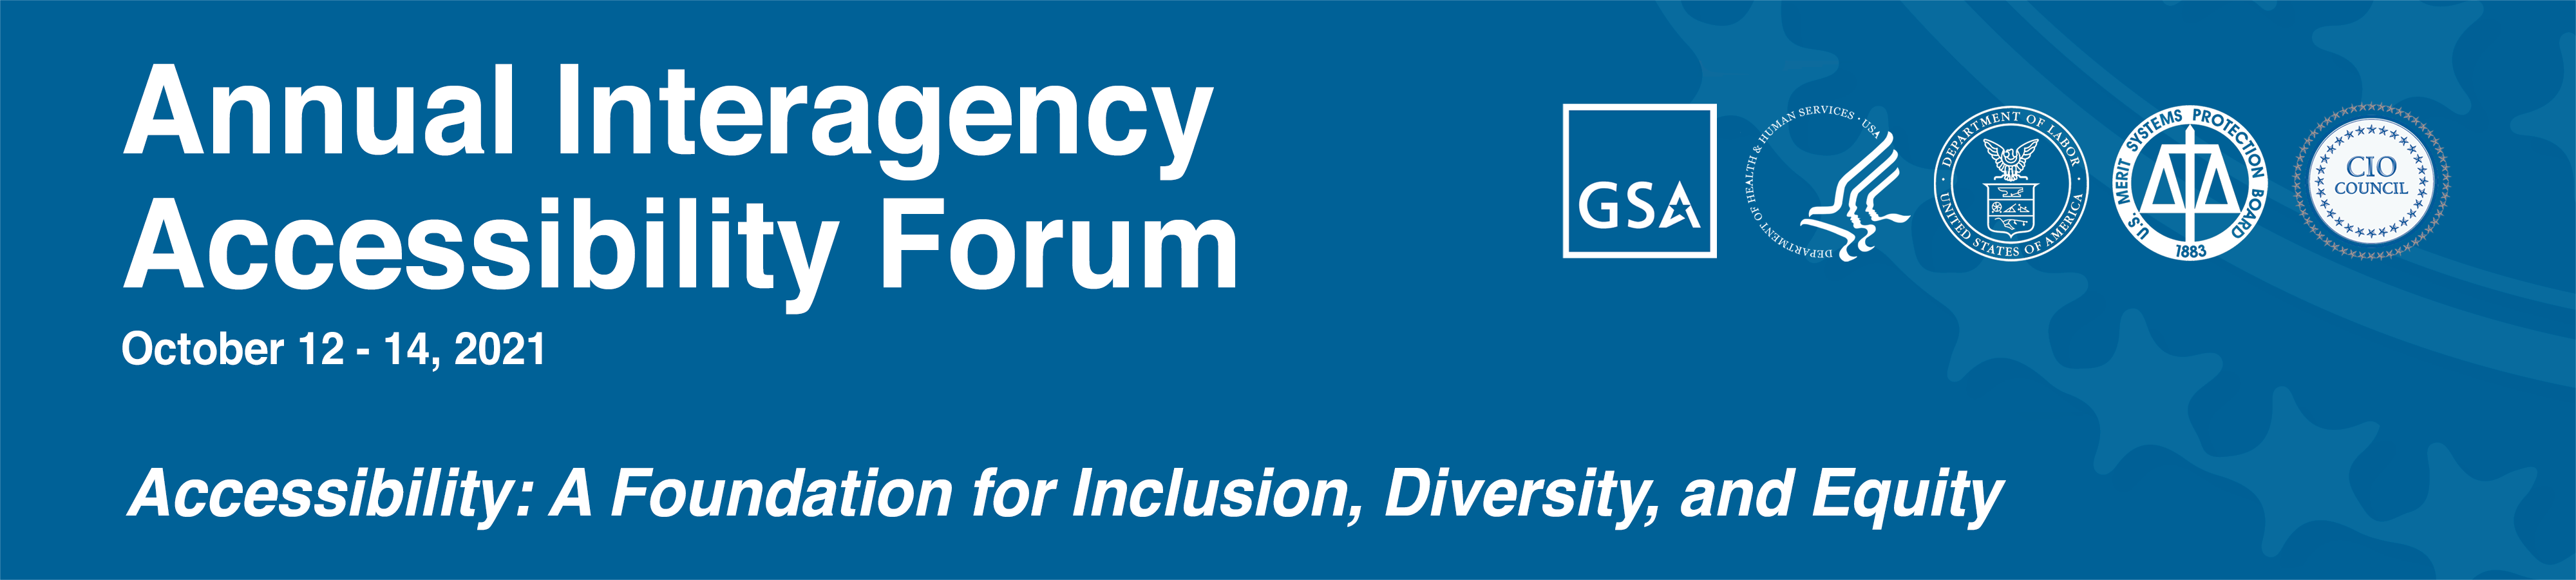 Annual Interagency Accessibility Forum. October 6 & 7, 2020. Enabling Missions through Accessible Technology - Leave No One Behind. Seals of the GSA, U.S. Census, and CIO Council.